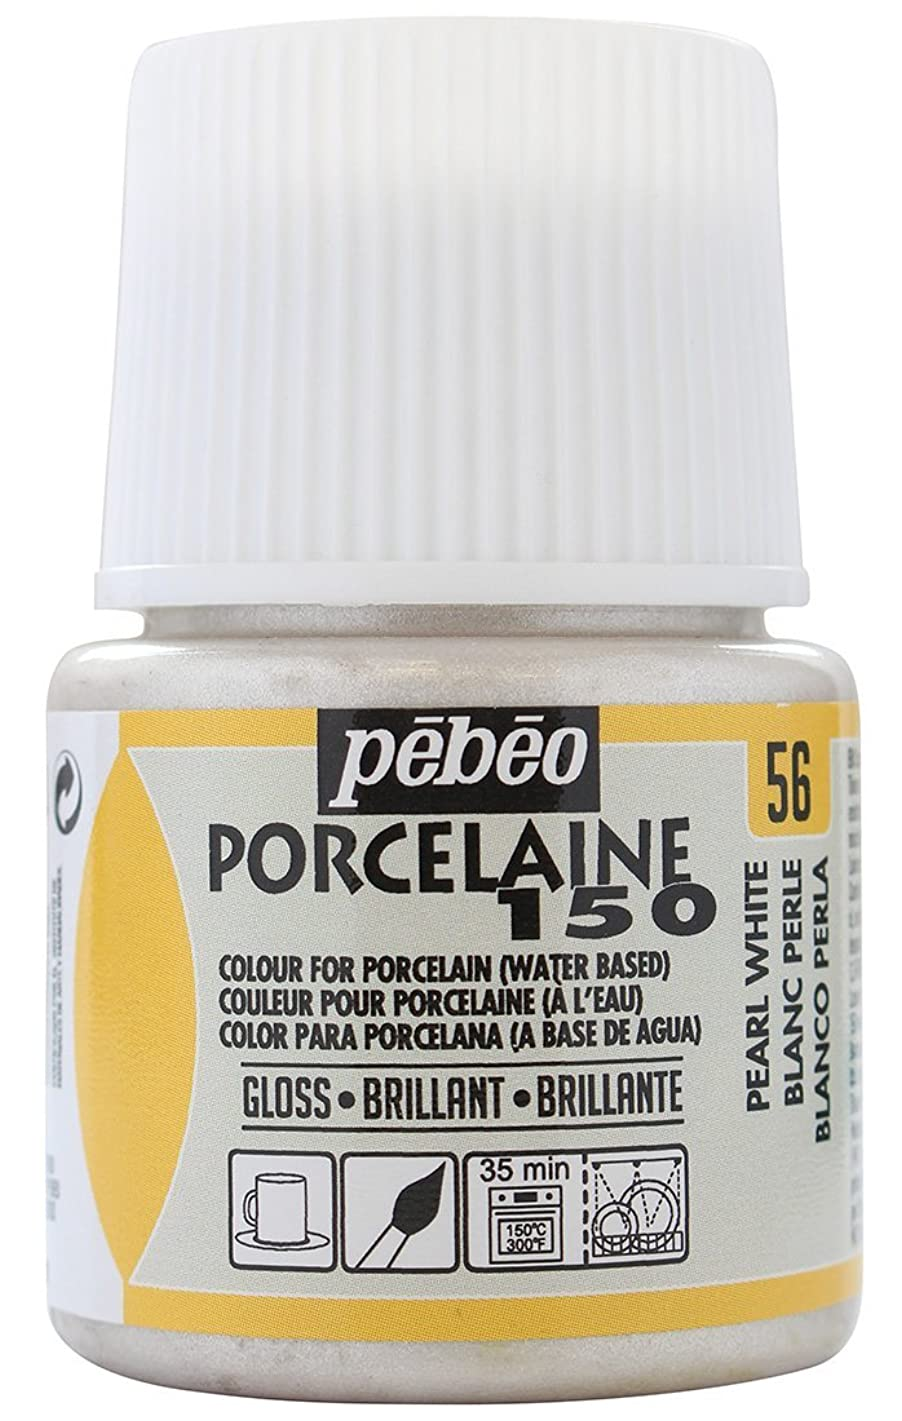 Pebeo Porcelaine 150, China Paint, 45 ml Bottle - Pearl White